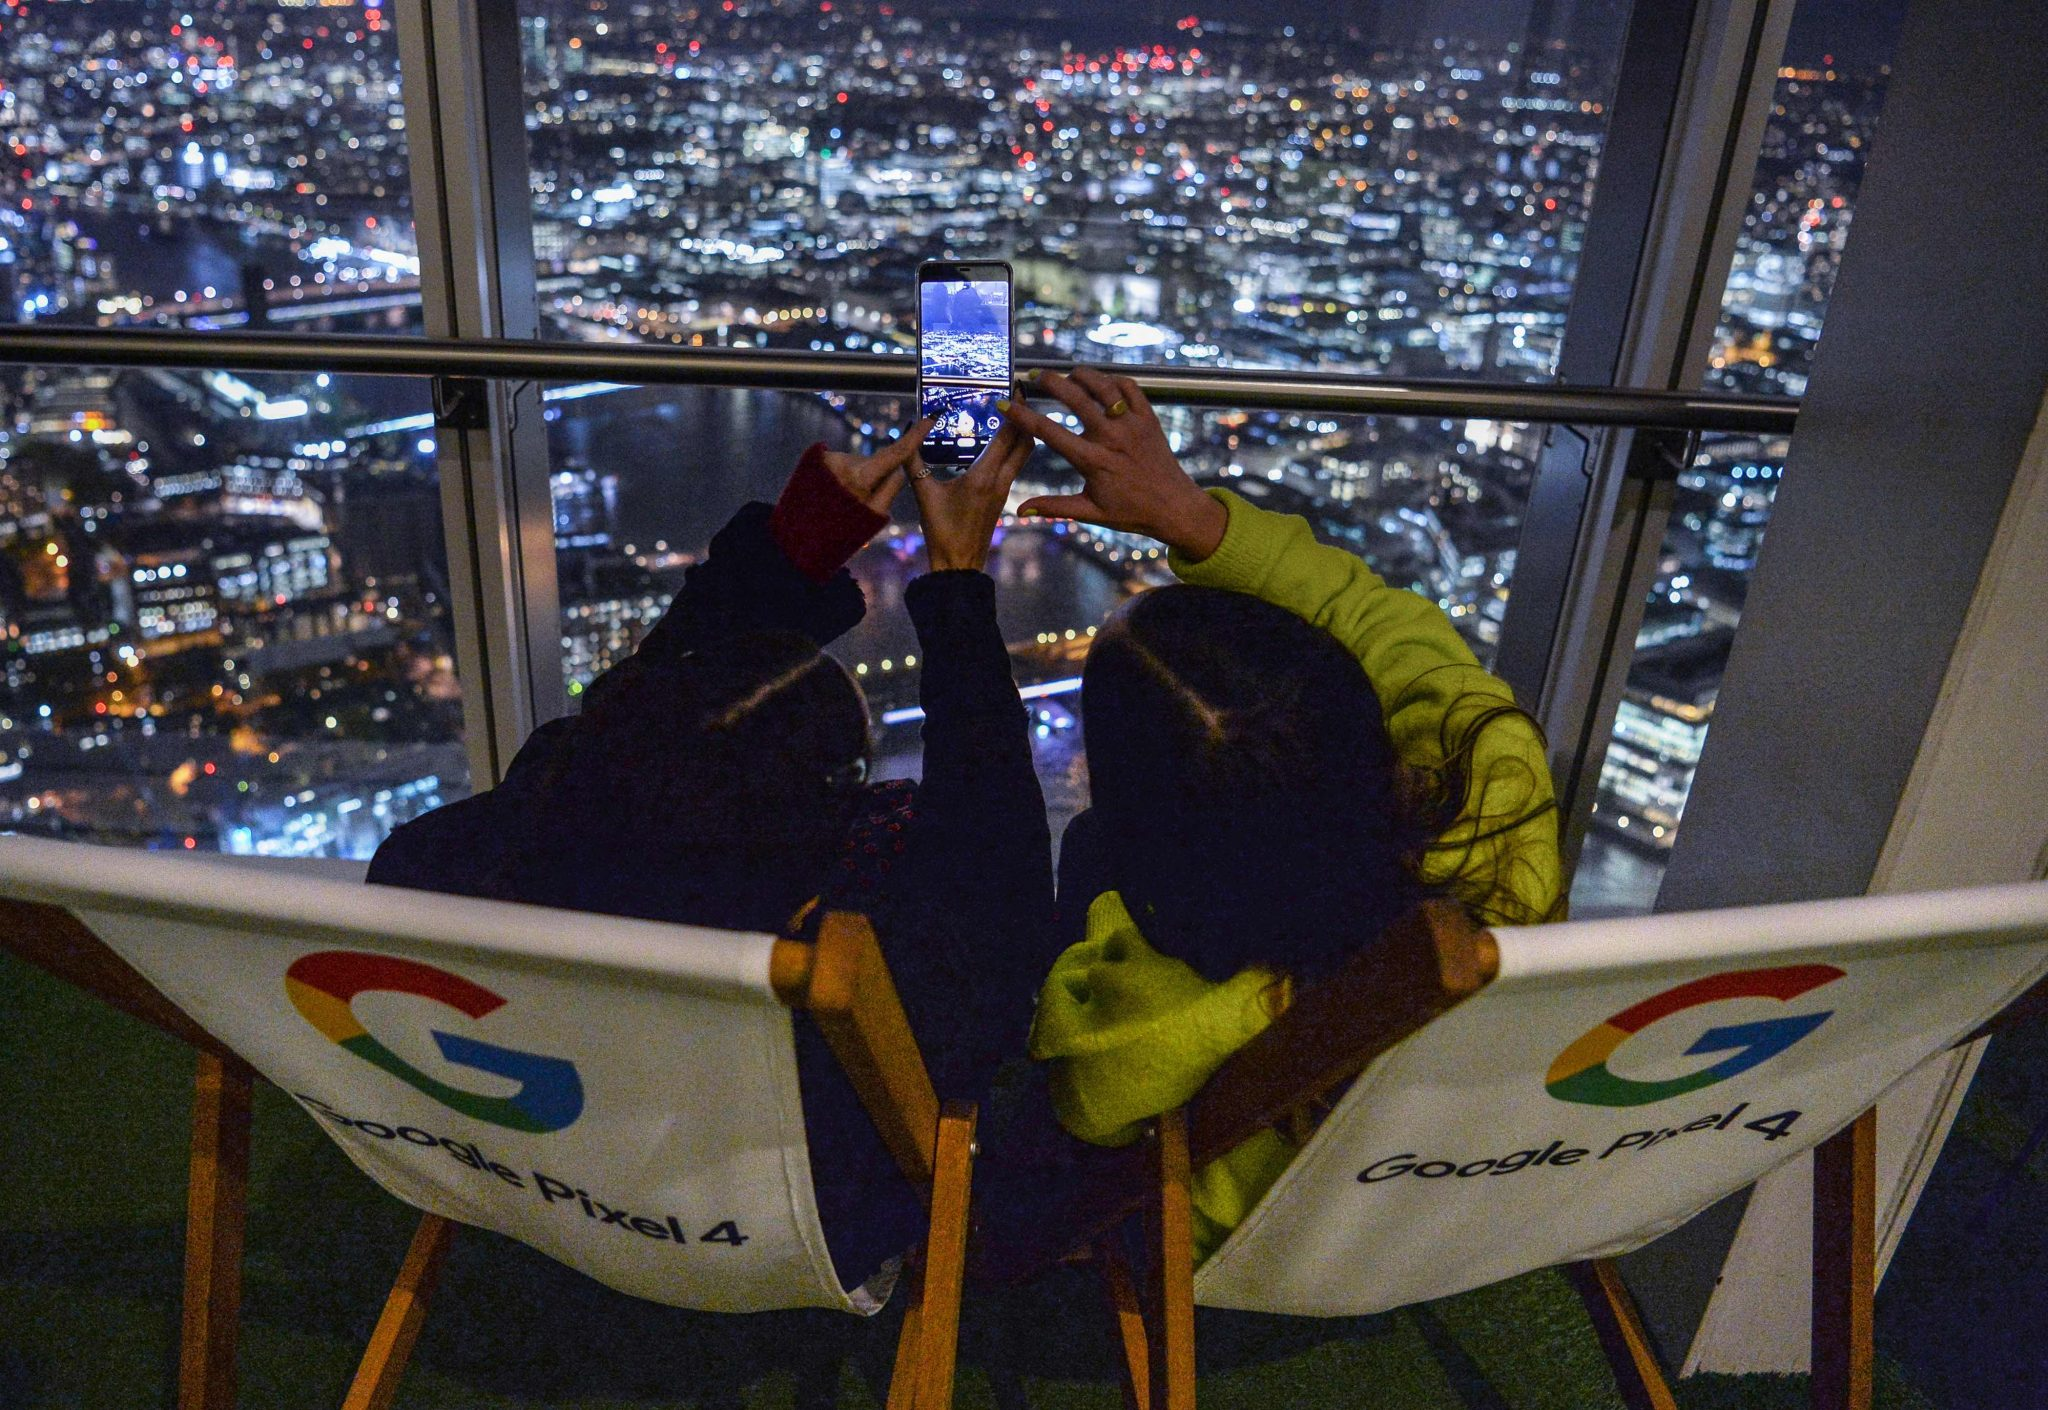 Guests test out the Google Pixel 4 Night Sight mode during an astrophotography evening hosted by Google Pixel 4 at the Shard, London. PA Photo. Picture date: Wednesday November 6, 2019. The Shard turned off its lights so guests at the event could get a clear view of the night sky to take pictures using the phone. The Google Pixel 4 launched last month with the new enhanced Night Sight mode, which can capture photos of the Milky Way in just one tap. Photo credit should read: Jeff Spicer/PA Wire